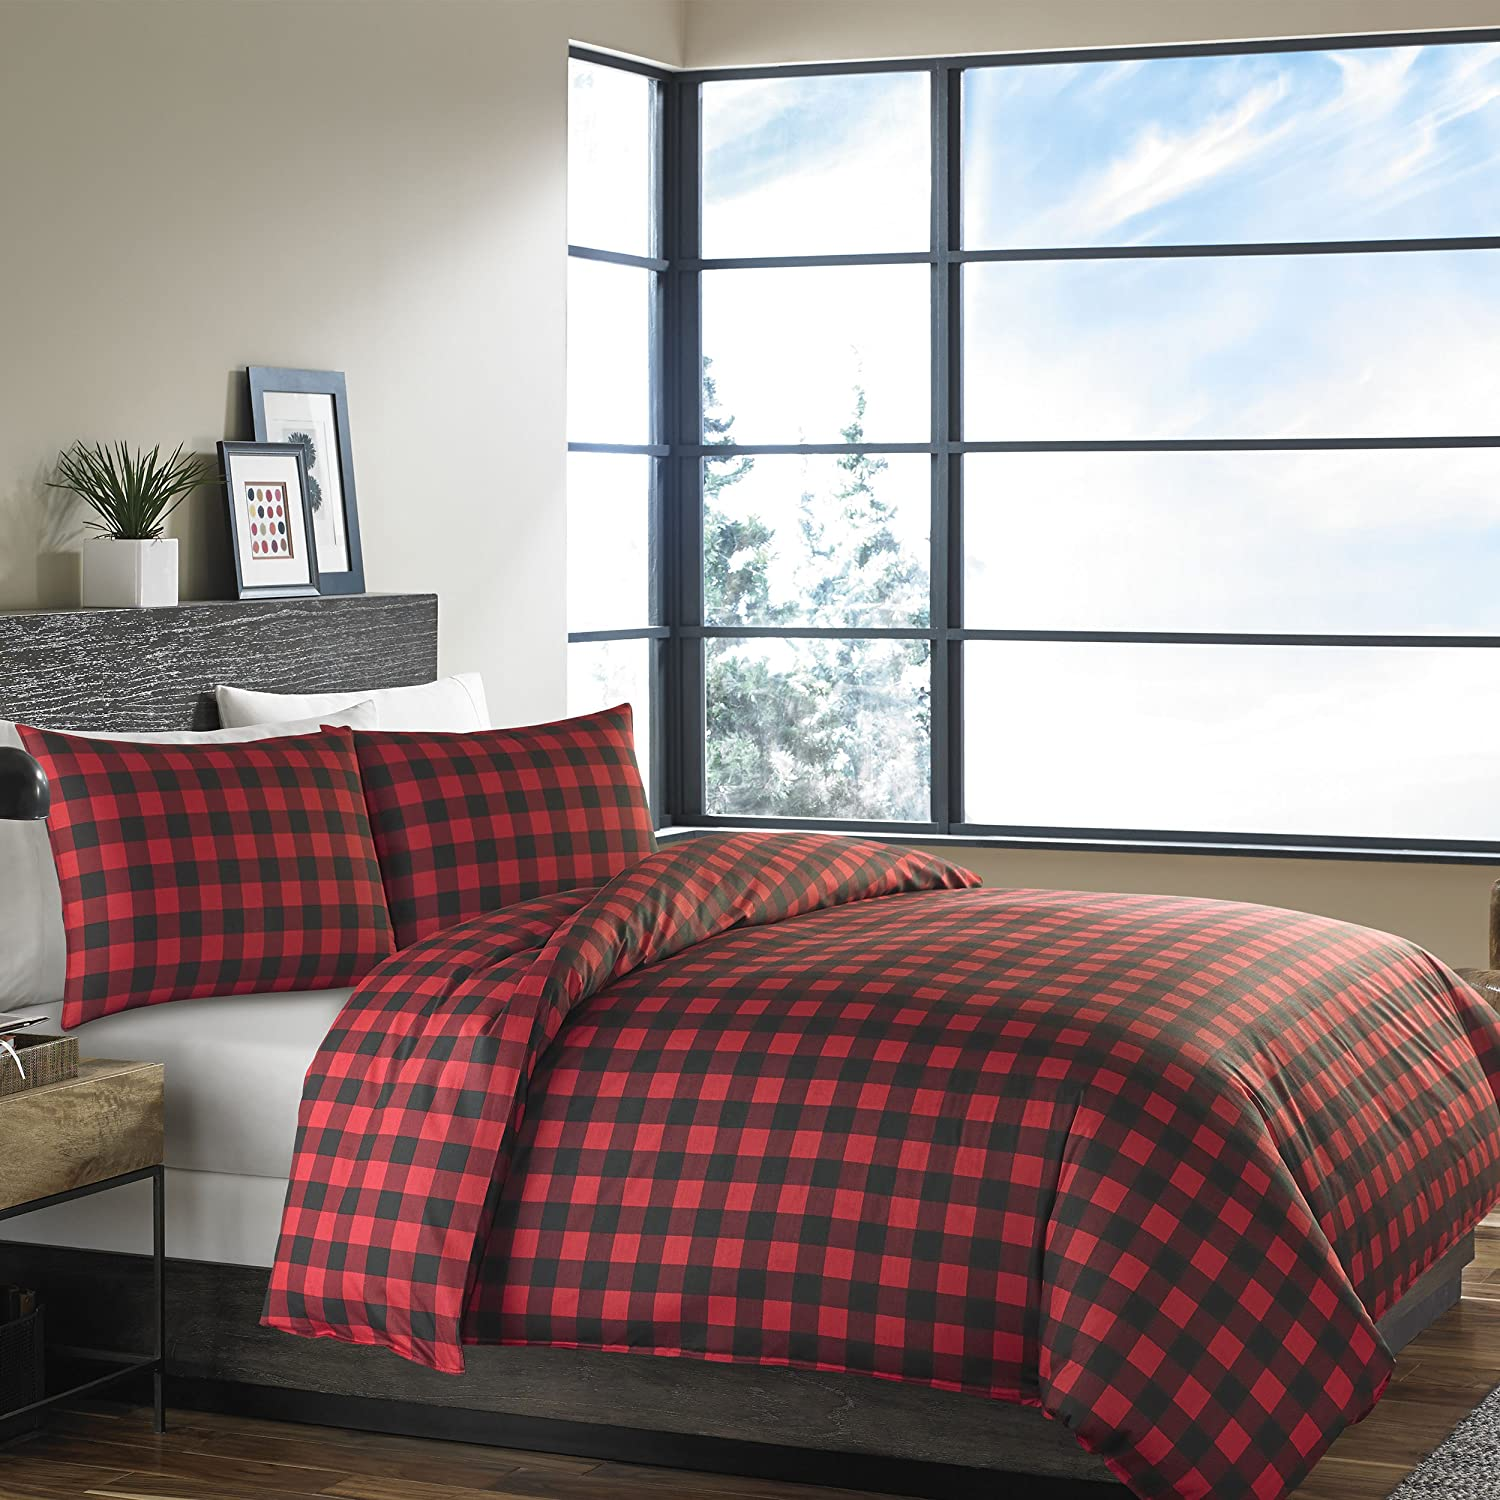 Elegant Amazon.com: Eddie Bauer 210707 Mountain Plaid Duvet Cover Set, Scarlet,  Full/Queen: Home U0026 Kitchen Design Inspirations